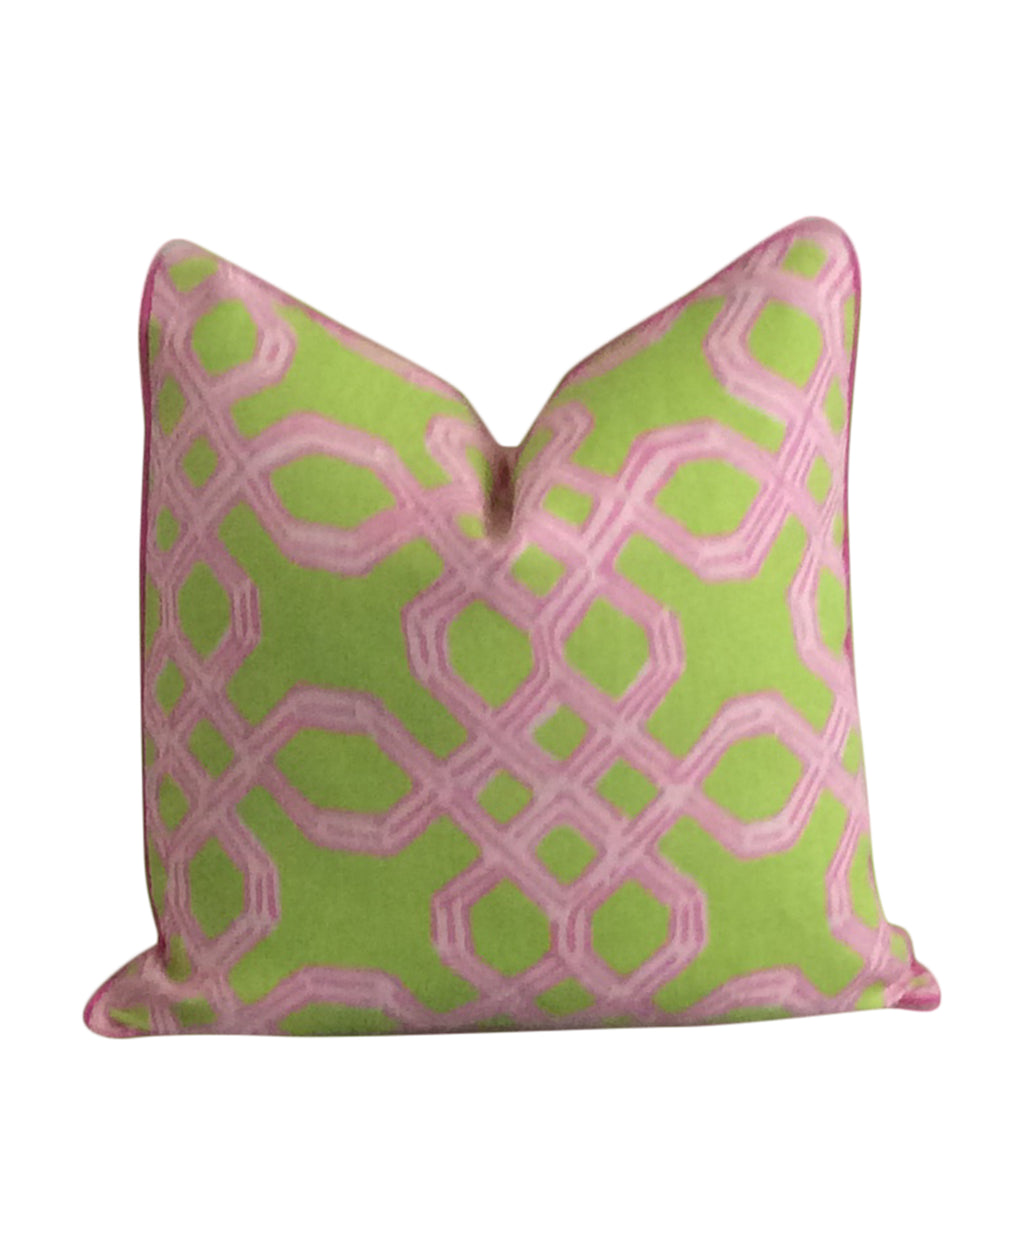 Lilly Pulitzer Well Connected Green and Pink Fabric Pillow Cover by Lilly and Co.